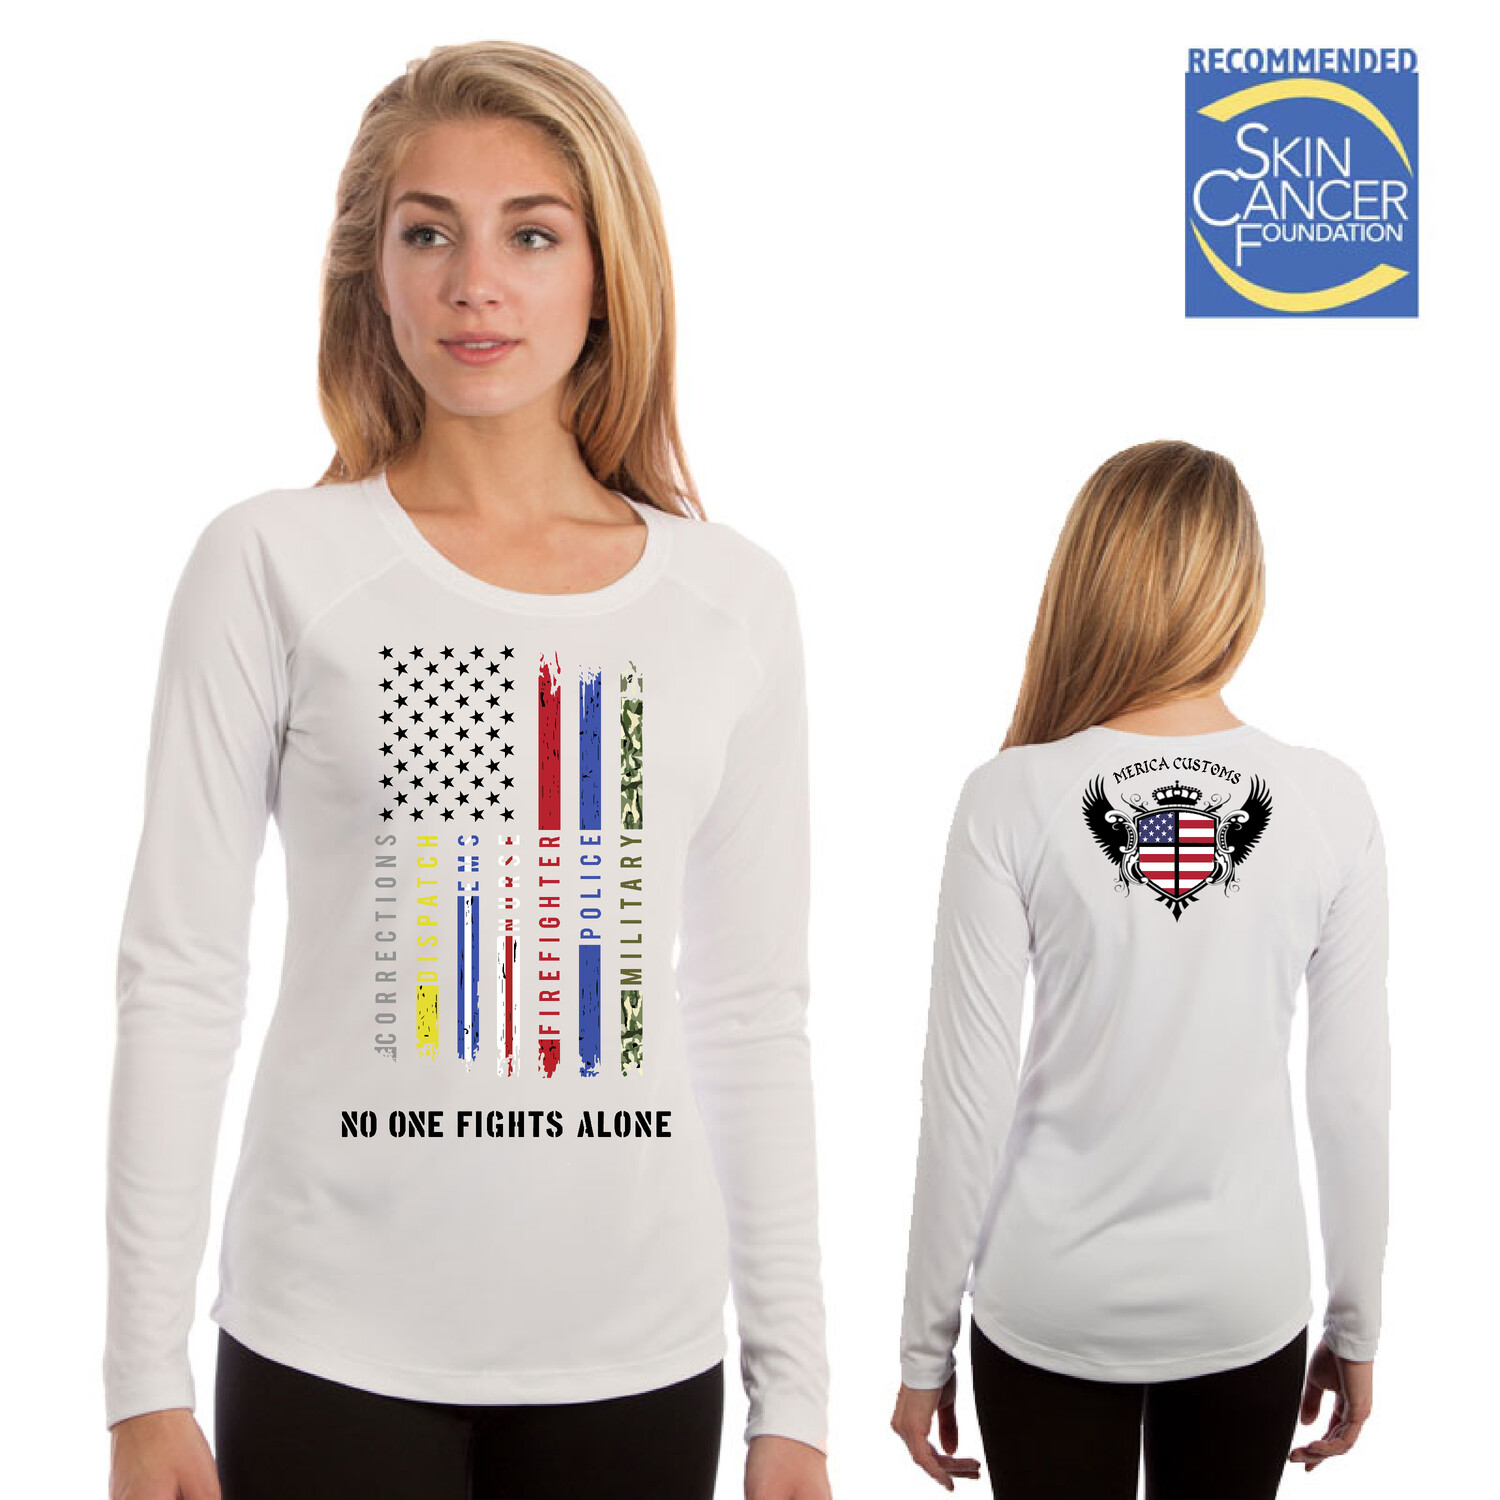 Support All The Thin Lines (Ladies Sublimation Vapor Solar Tee - Long Sleeve)